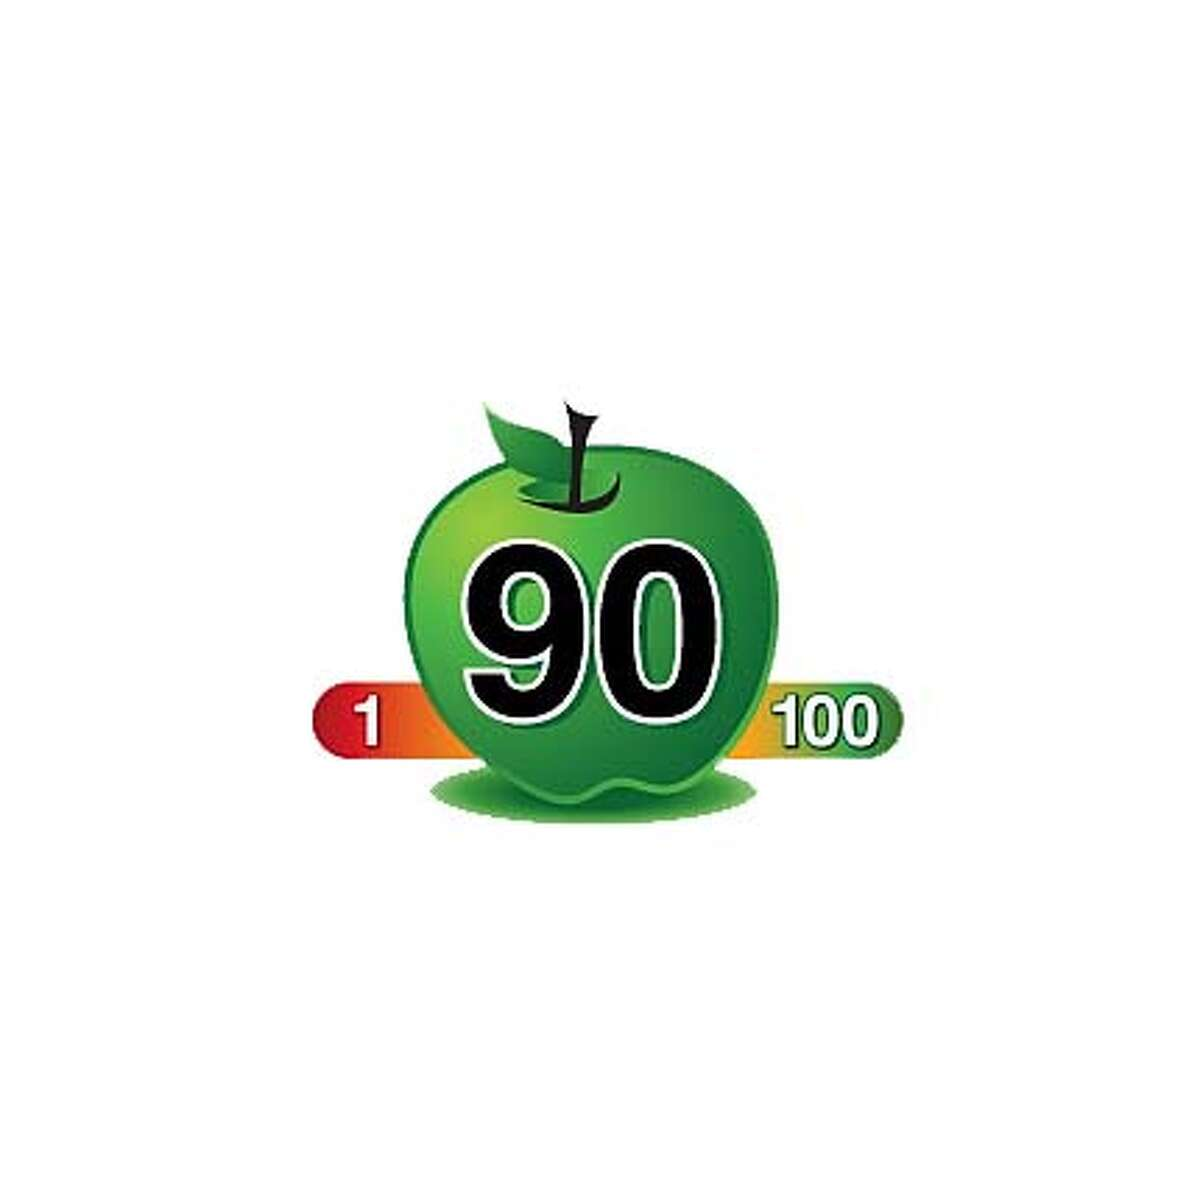 This label would be added to foods that have been scored according to the Overall Nutritional Quality Index, a new system for rating how healthy foods are. Healtheir foods received higher scores. Courtesy of Toopco Associates.